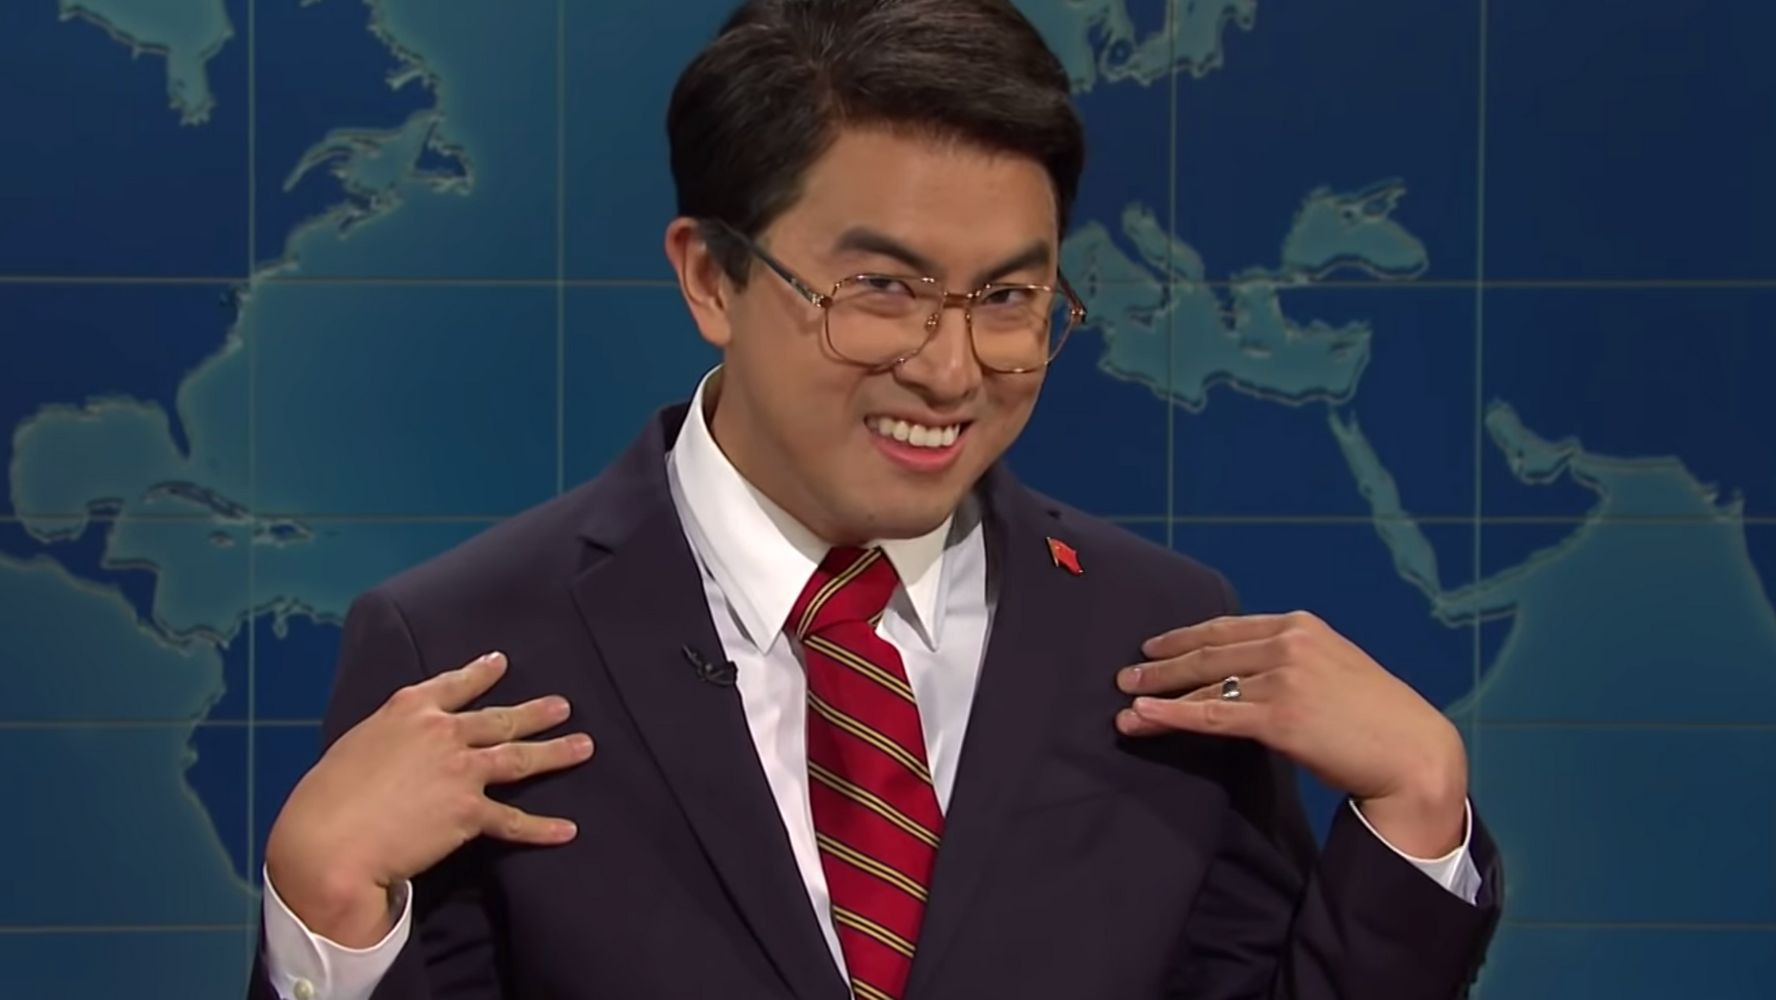 Westlake Legal Group 5d9a093e2100006601aaced4 Bowen Yang's Hilarious New 'SNL' Character Is 'Basically The Lizzo Of China'